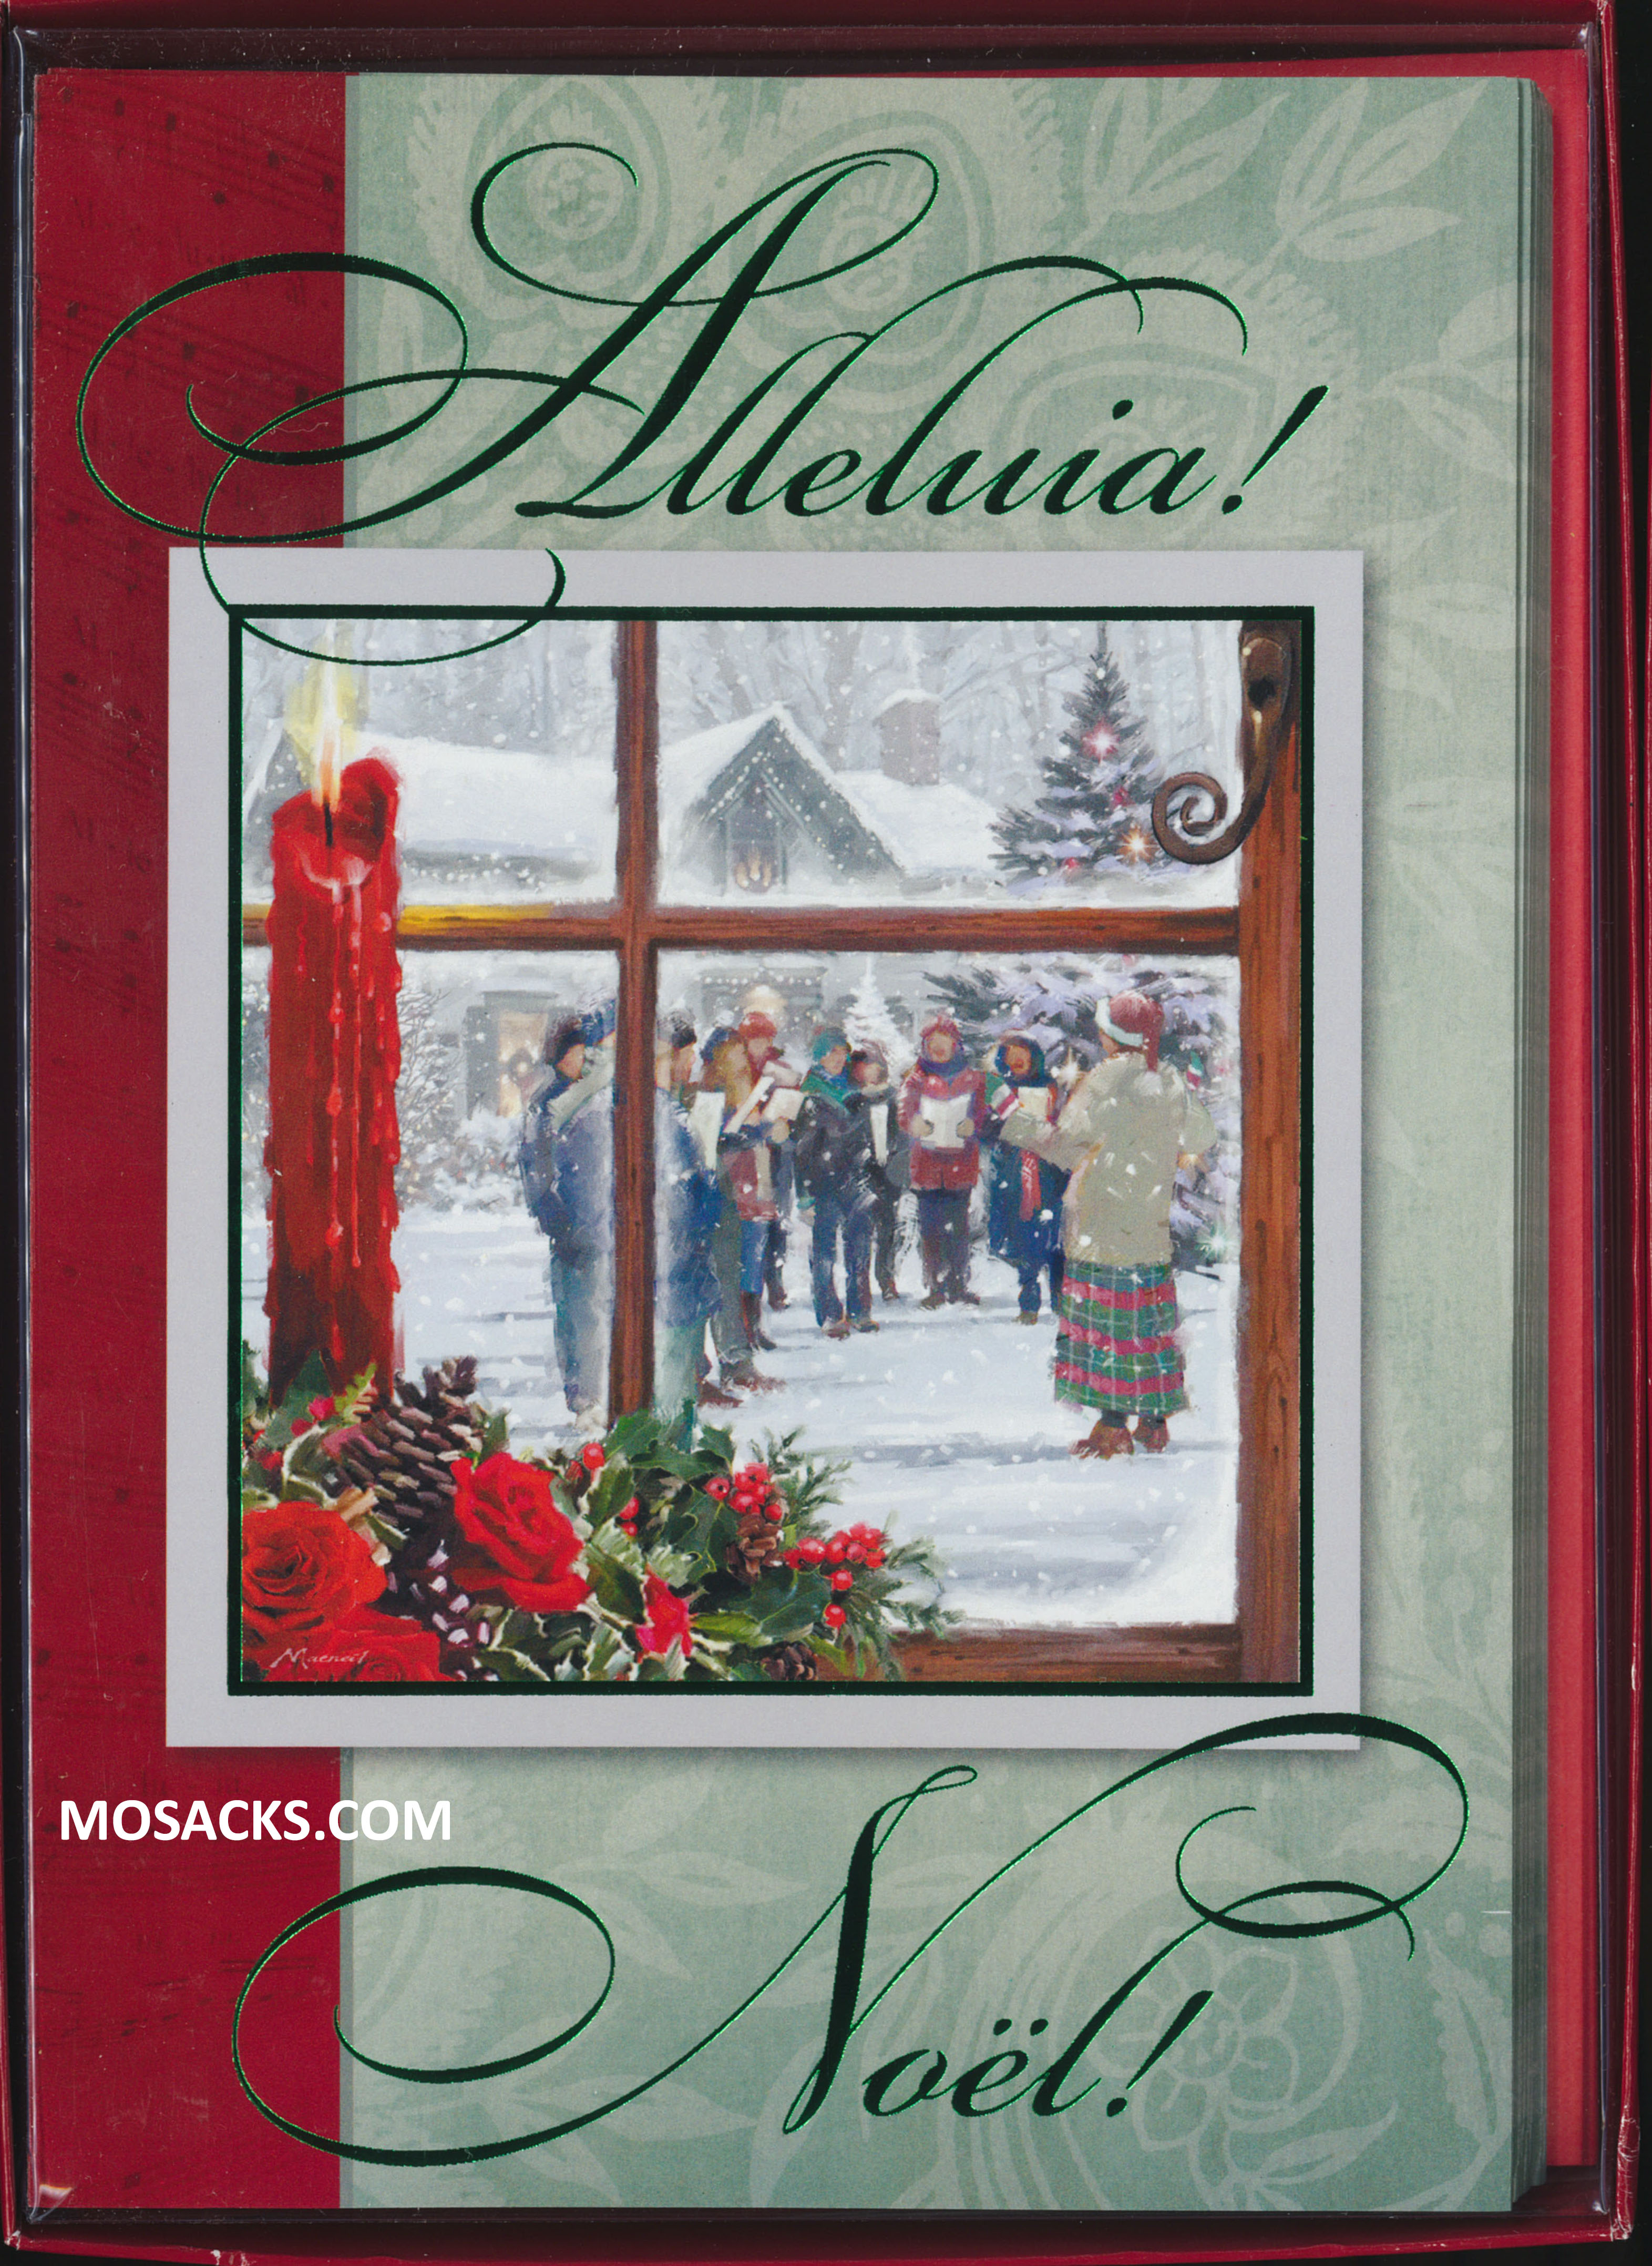 Boxed Christmas Cards Alleluia 10 in box 63-C74609